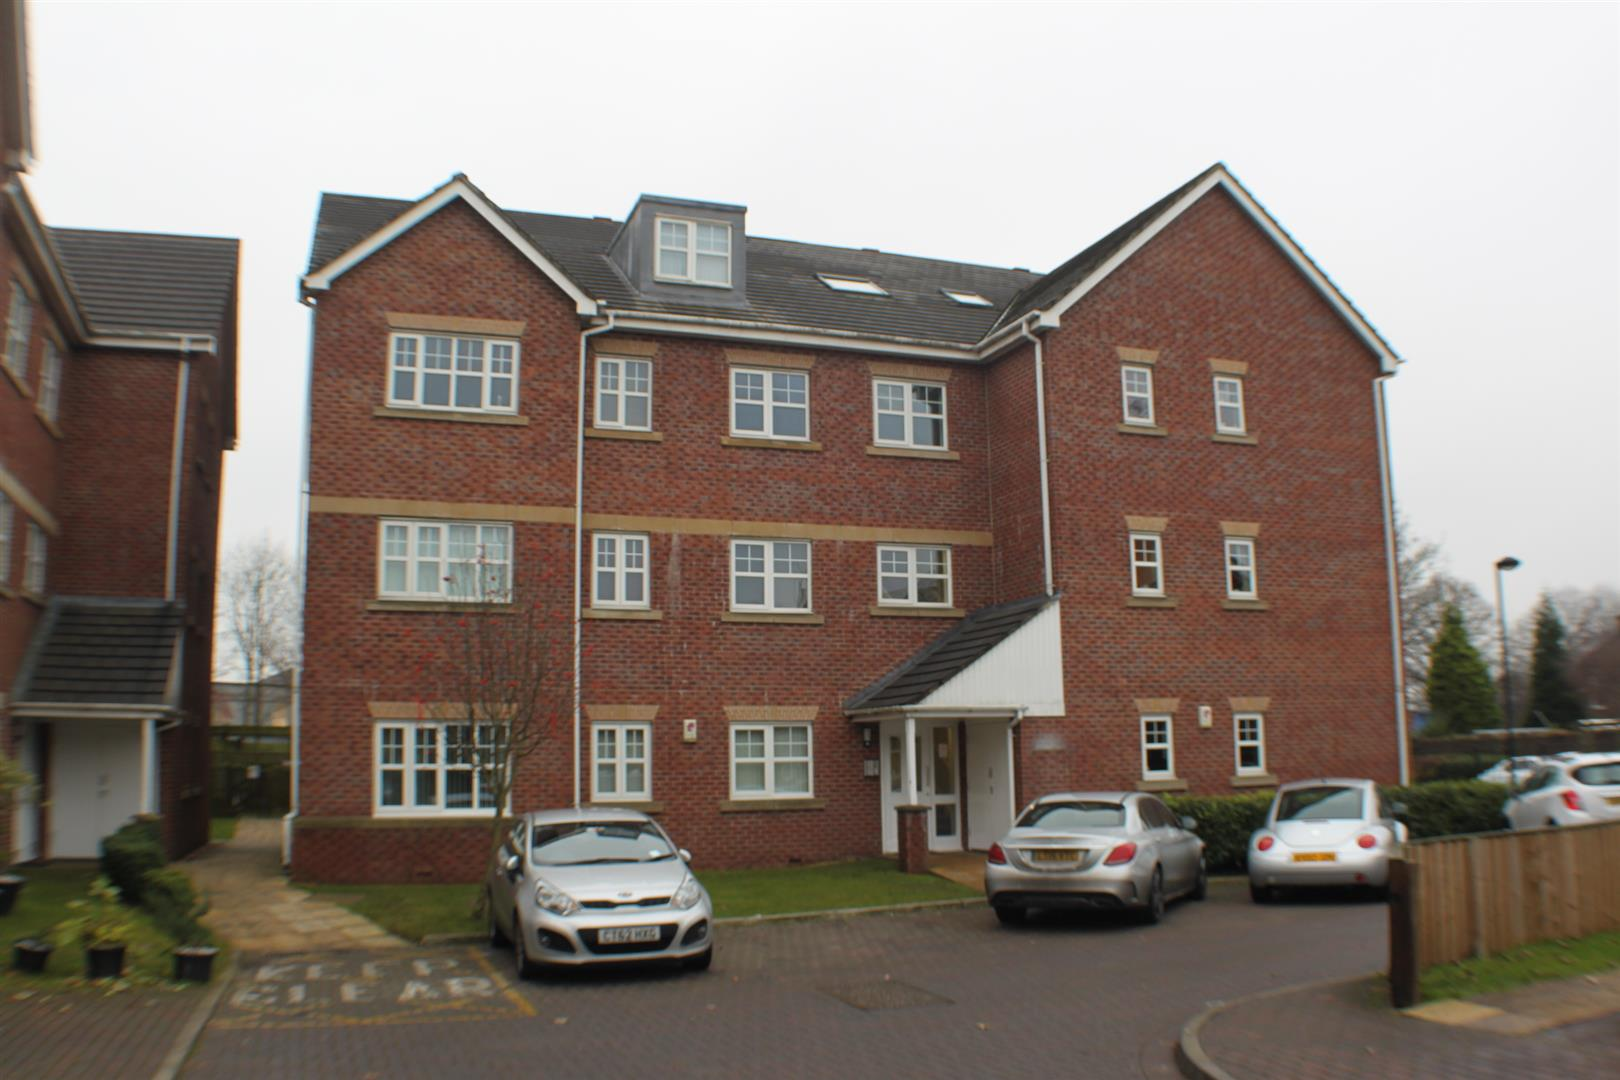 2 Bedrooms Flat for sale in Ellesmere Green, Eccles, Manchester